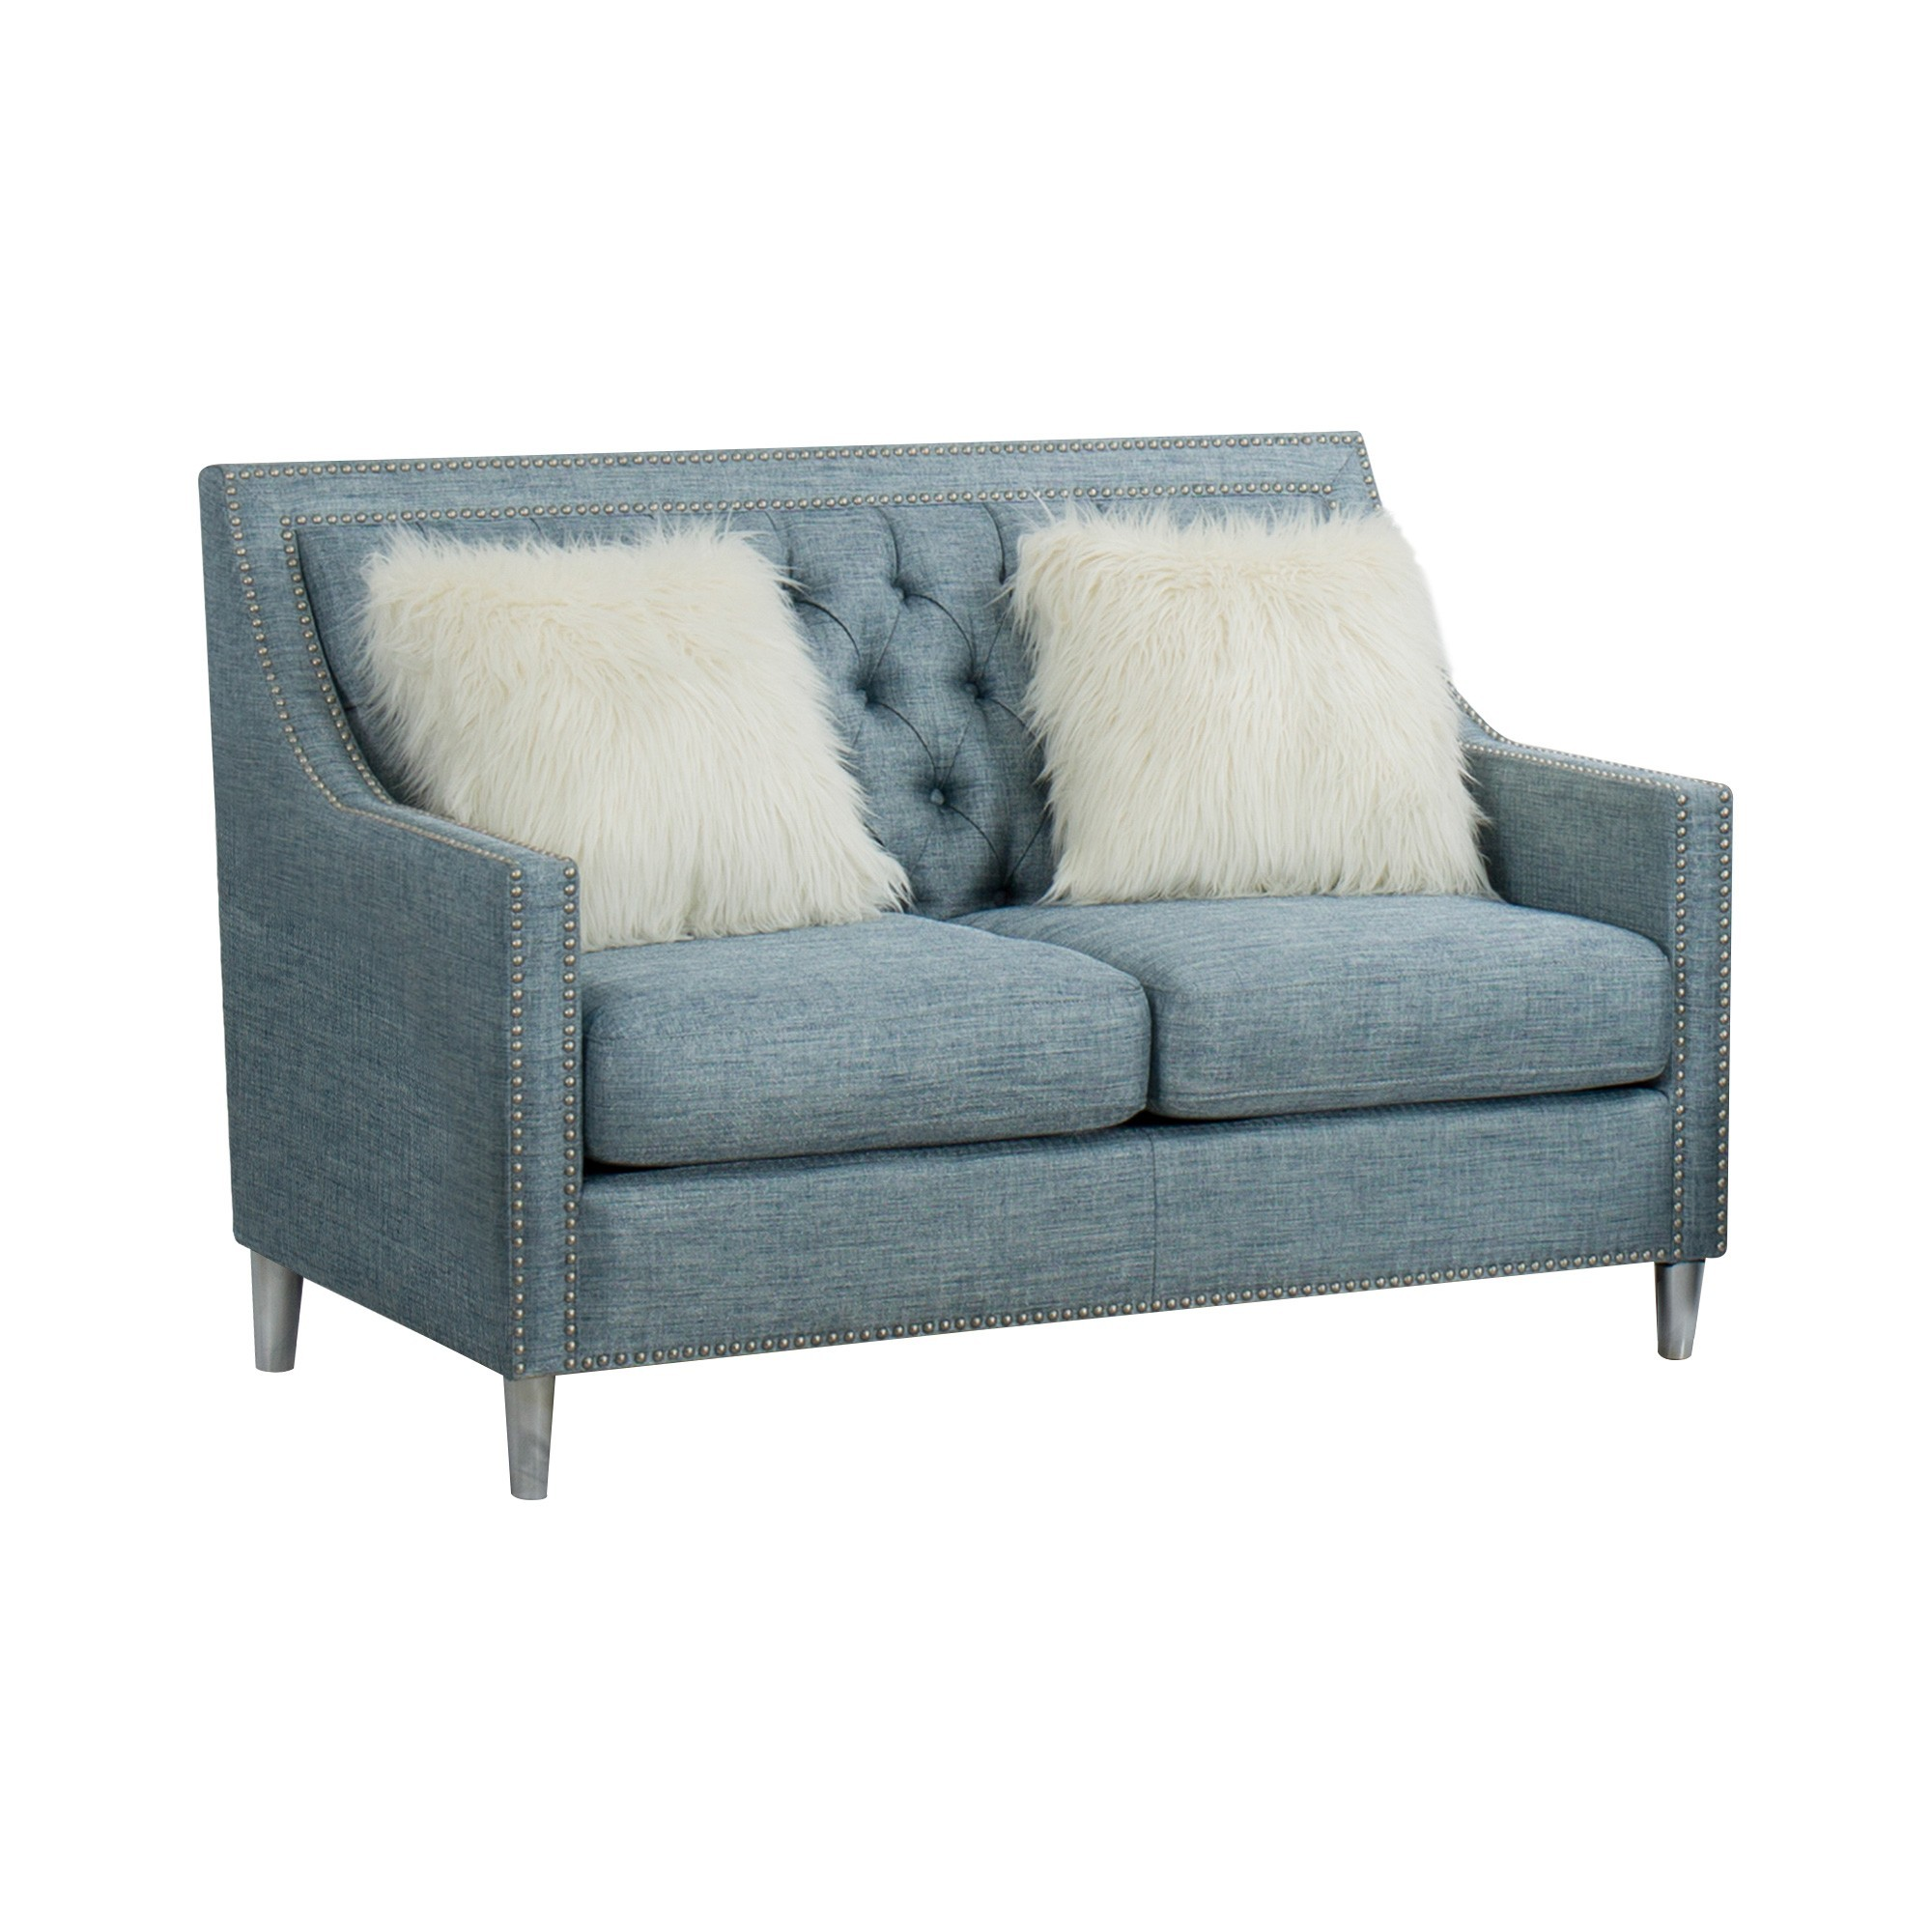 Seville Fabric 2 Seater Sofa